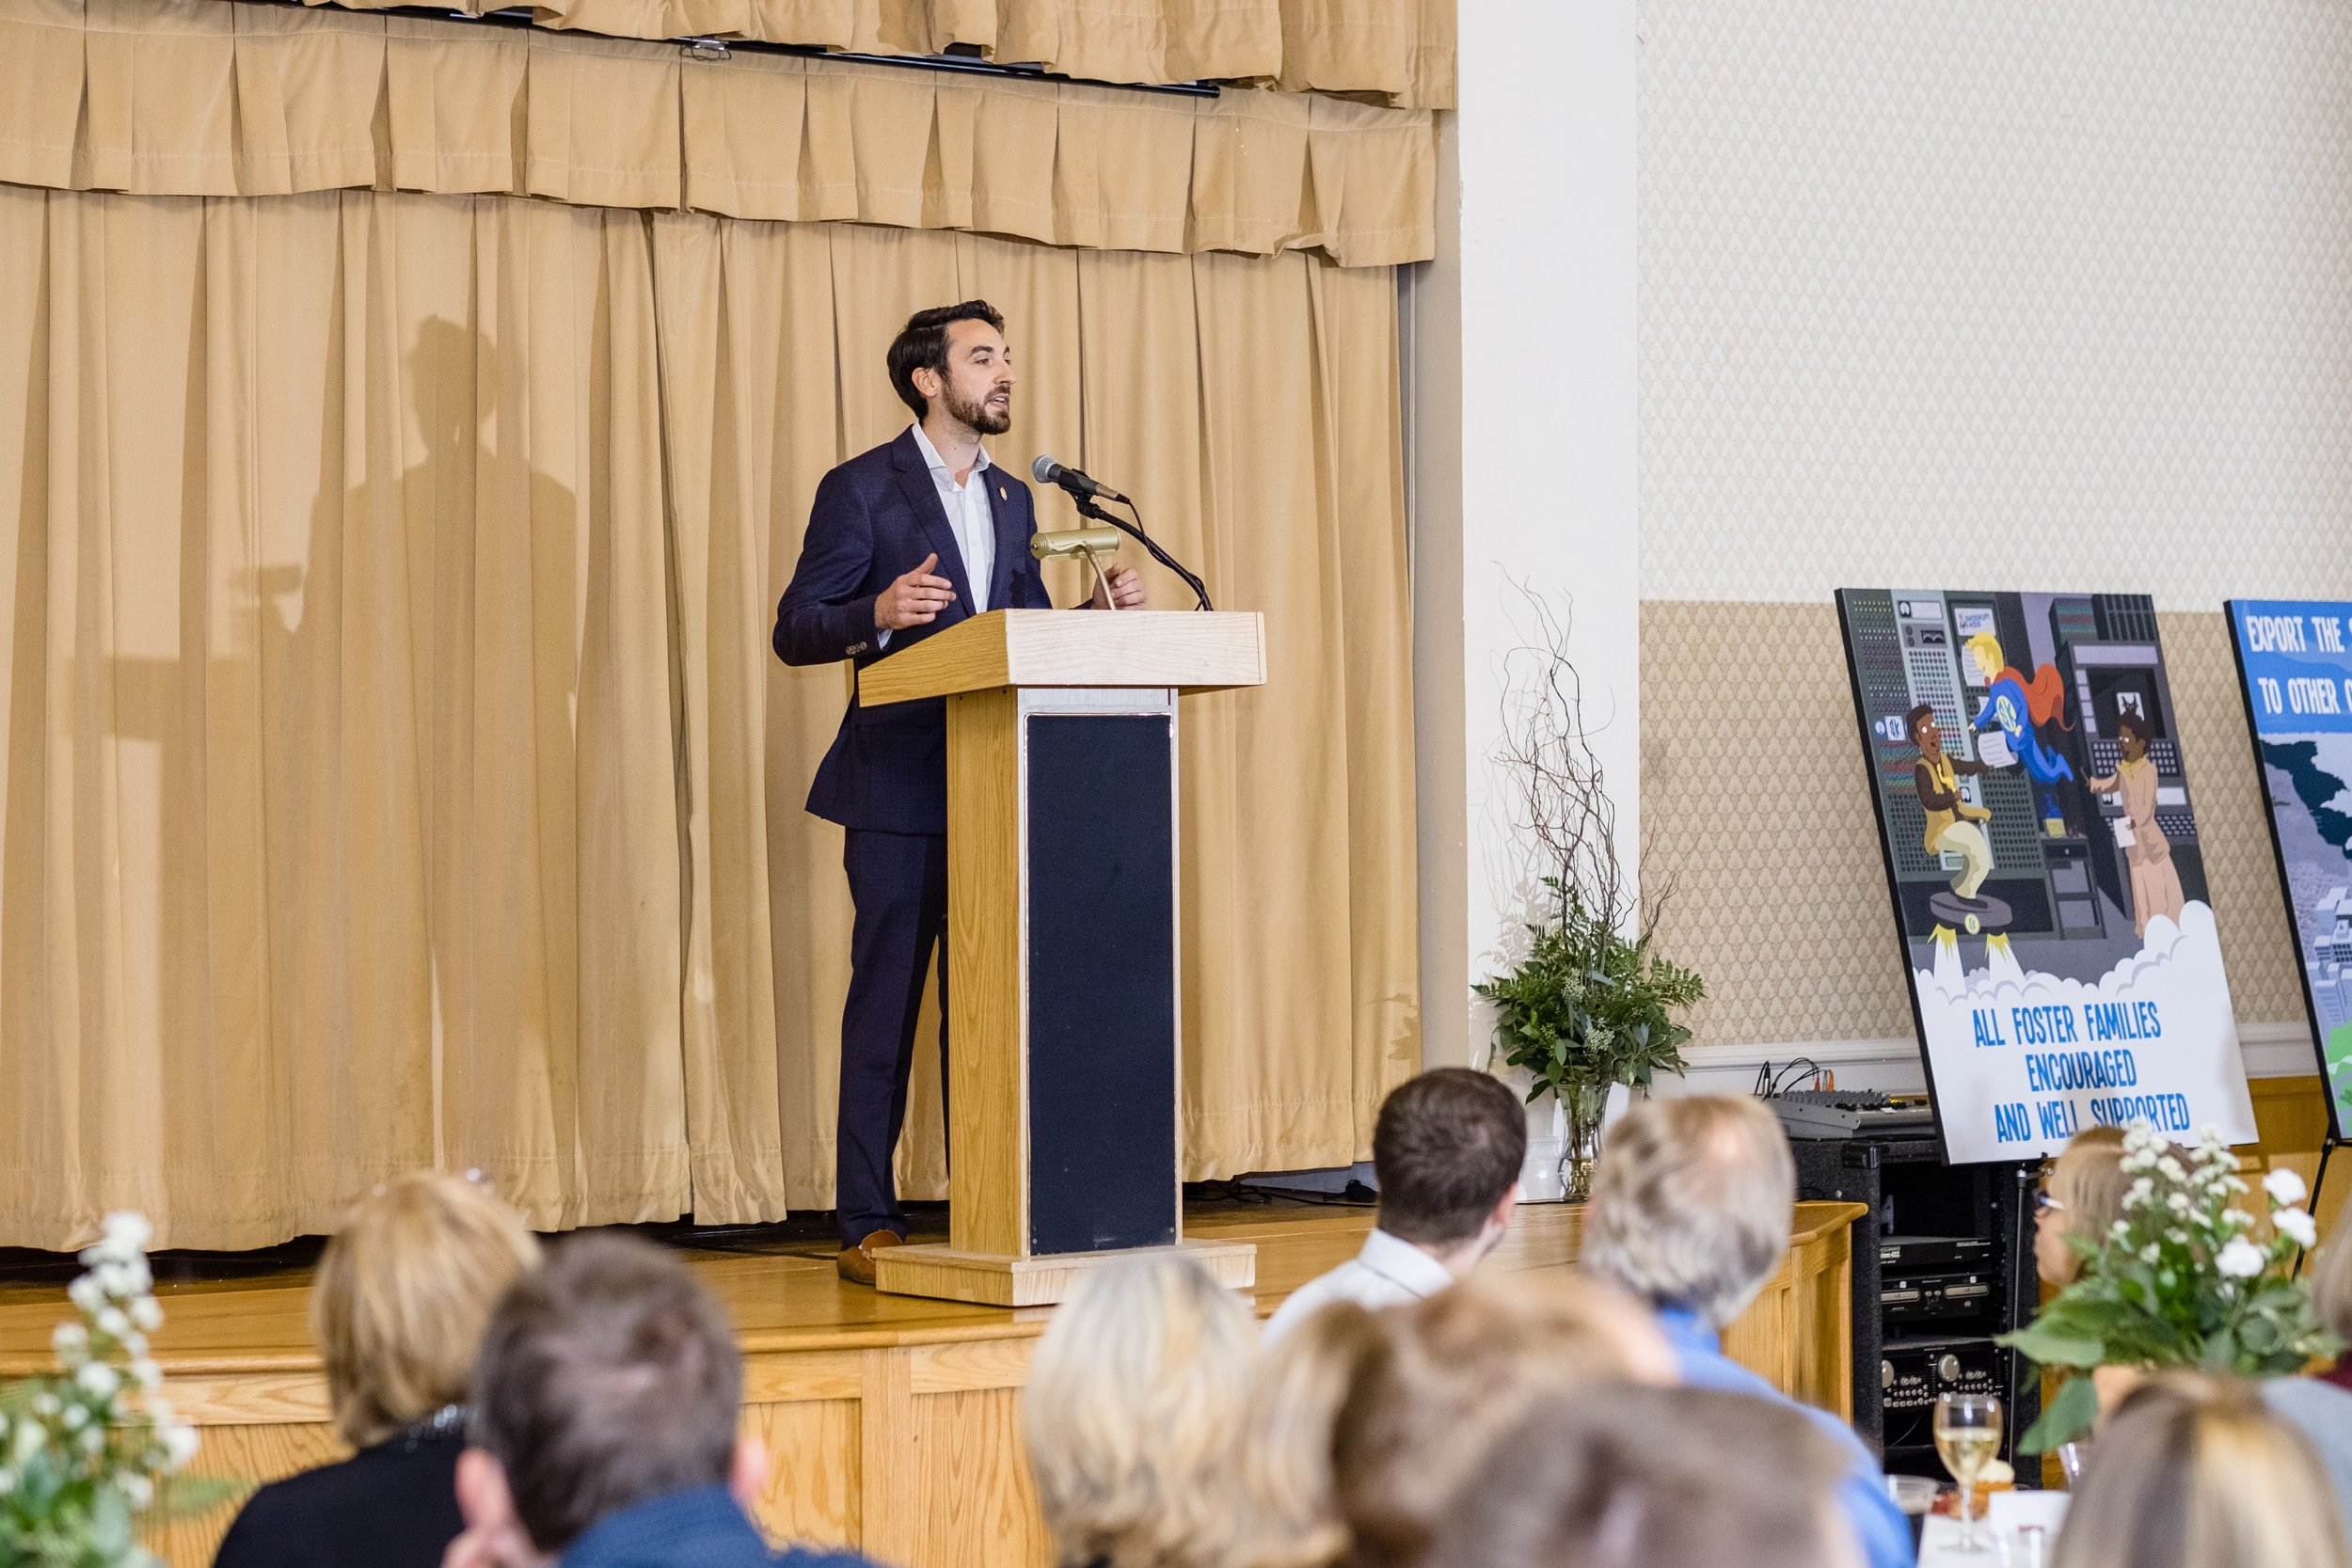 Skookum Kids Founder and Executive Director Ray Deck, speaks at Skookum's first fundraiser on Friday, Nov. 10, 2017 at the Majestic Ballroom in Bellingham, Washington.(Photo by Anthony Fiorillo). Over 200 people attended the event and Skookum raised $28,000 that night.